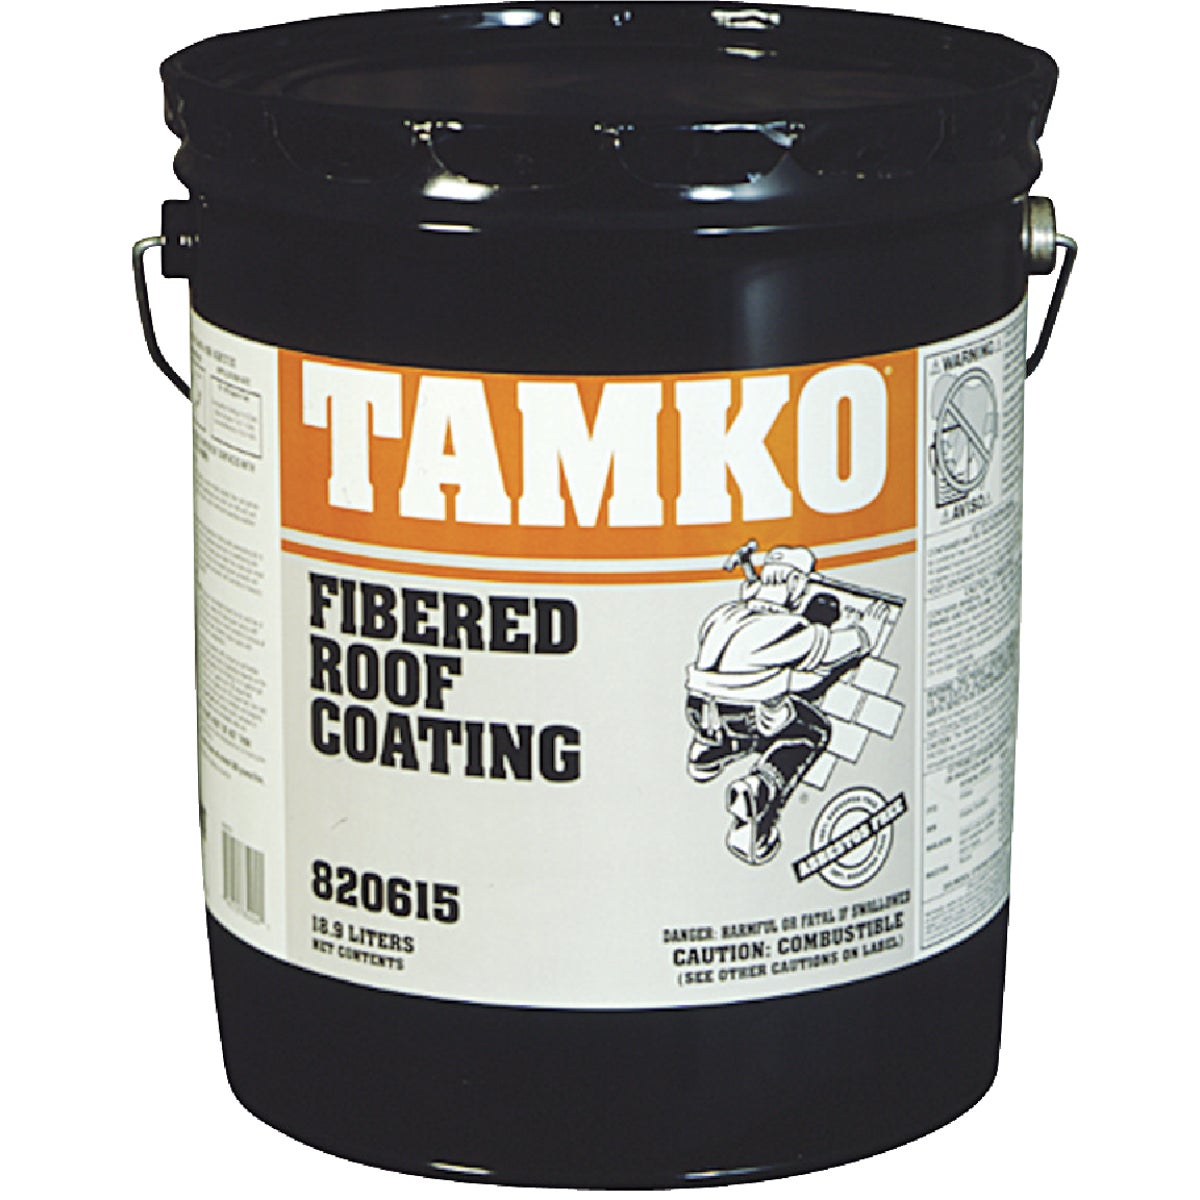 5GAL FIBER ROOF COATING - 30001647 by Tamko Bldg Prod Inc